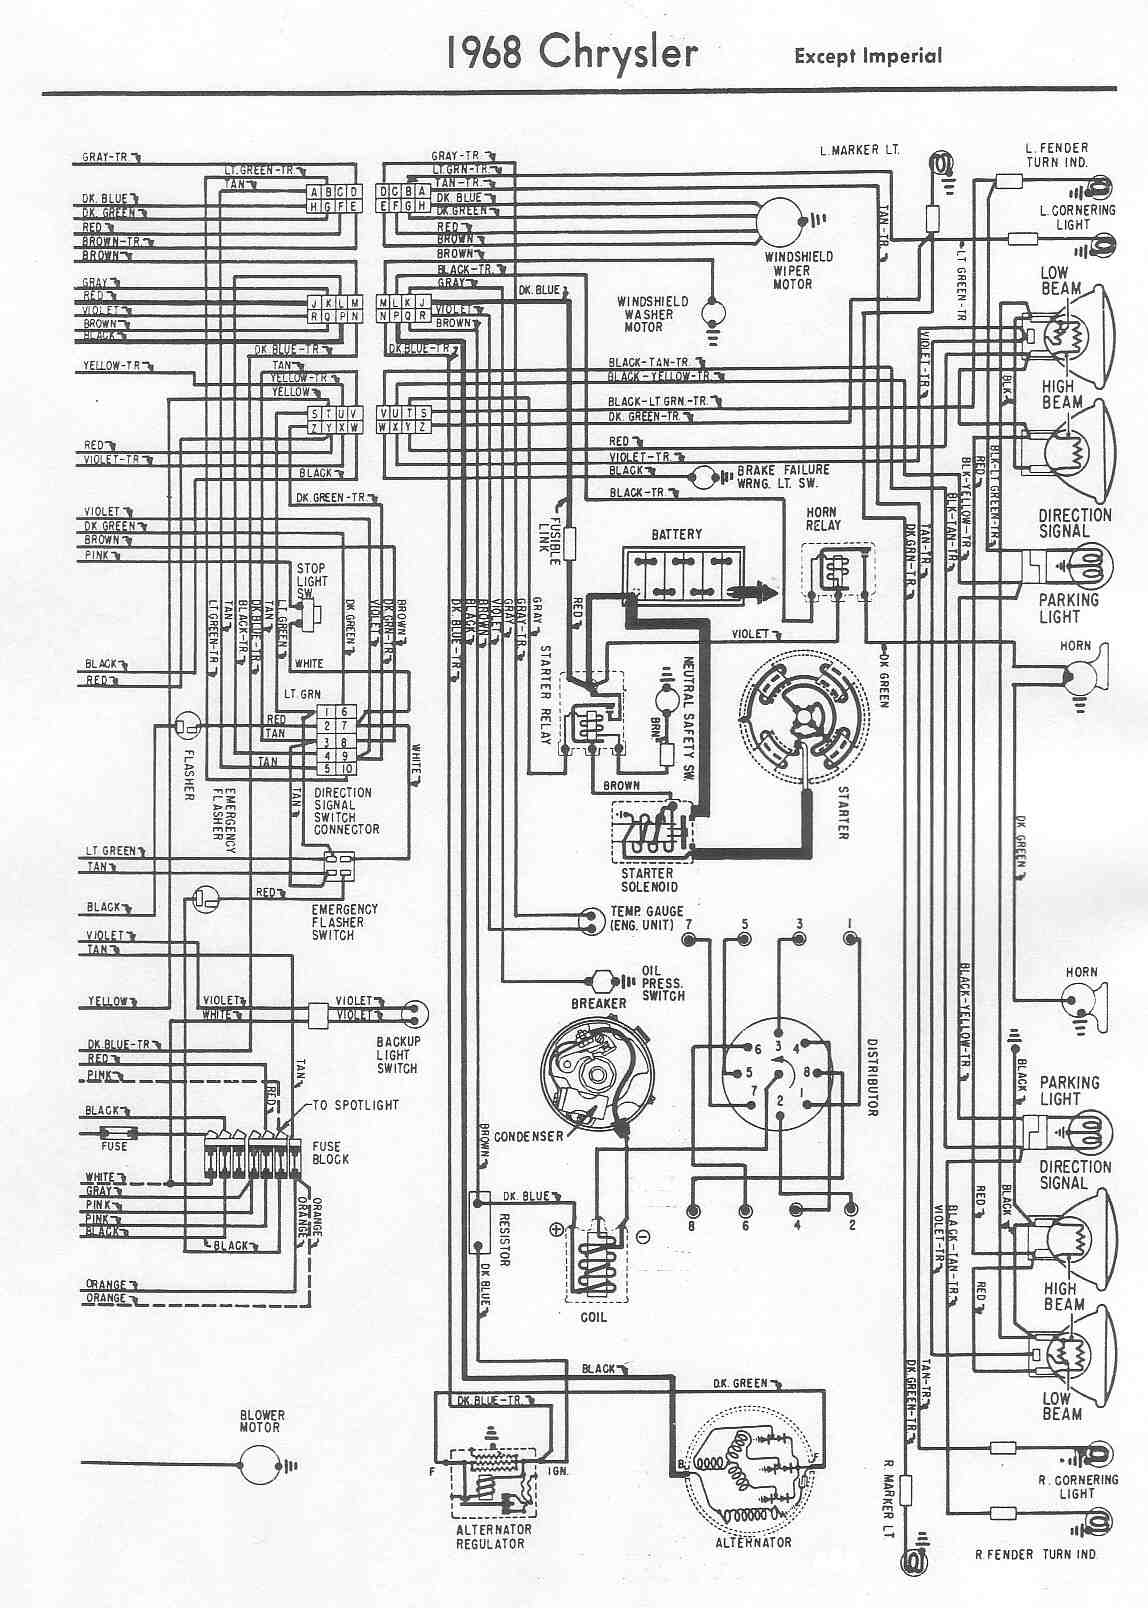 small resolution of 1965 dodge coronet dash wiring diagram 1965 dodge coronet chrysler 300 wiring schematics automotive wiring symbols